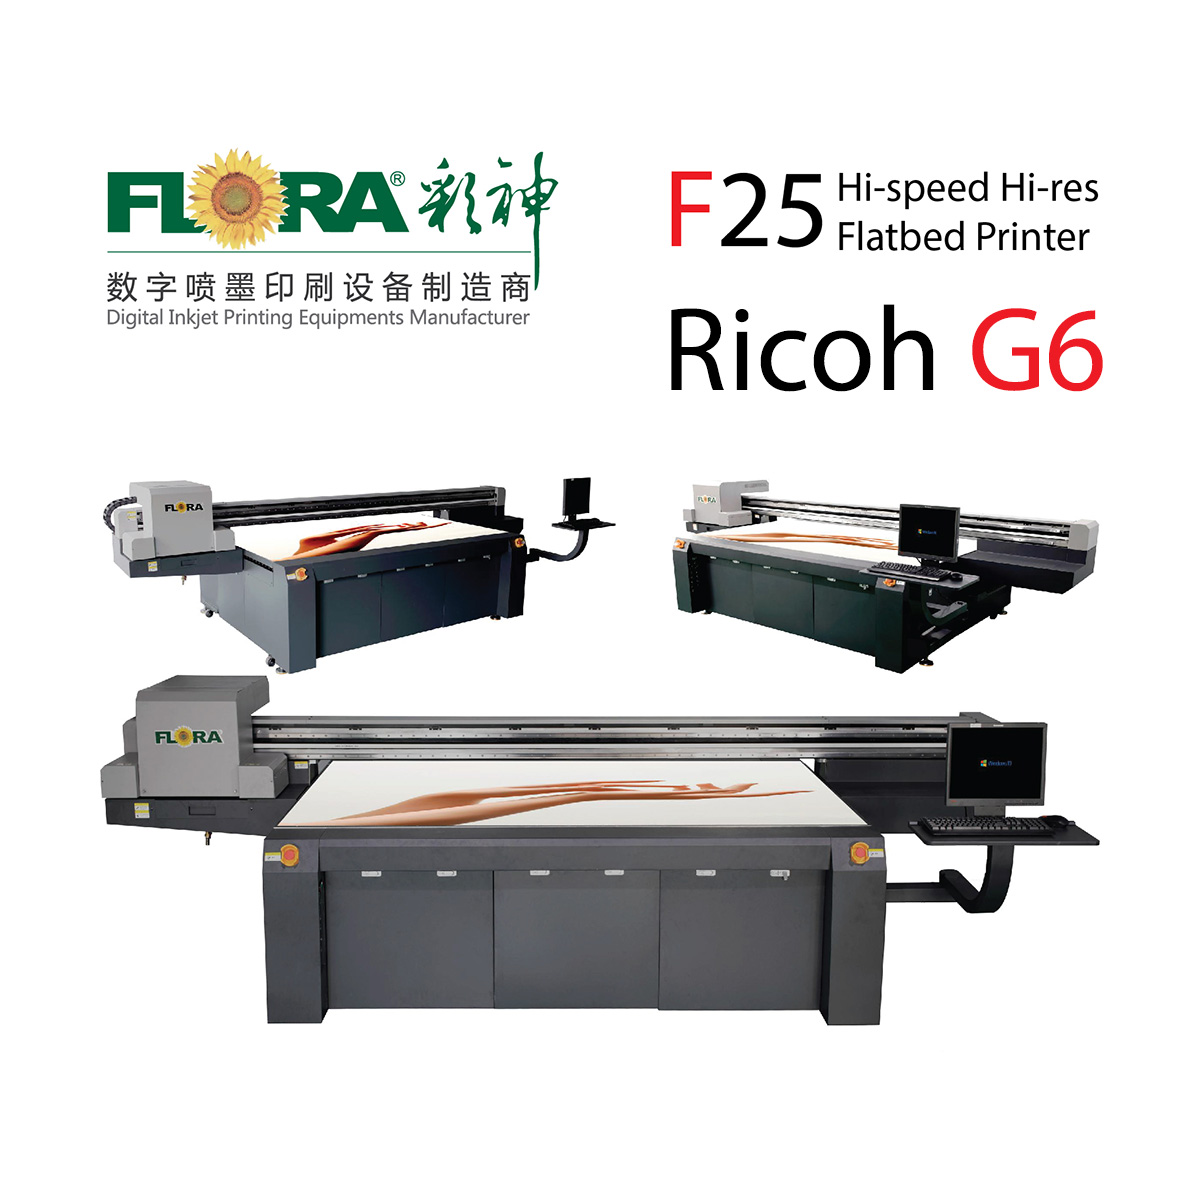 Flora UV flatbed printer F25 ricoh G5